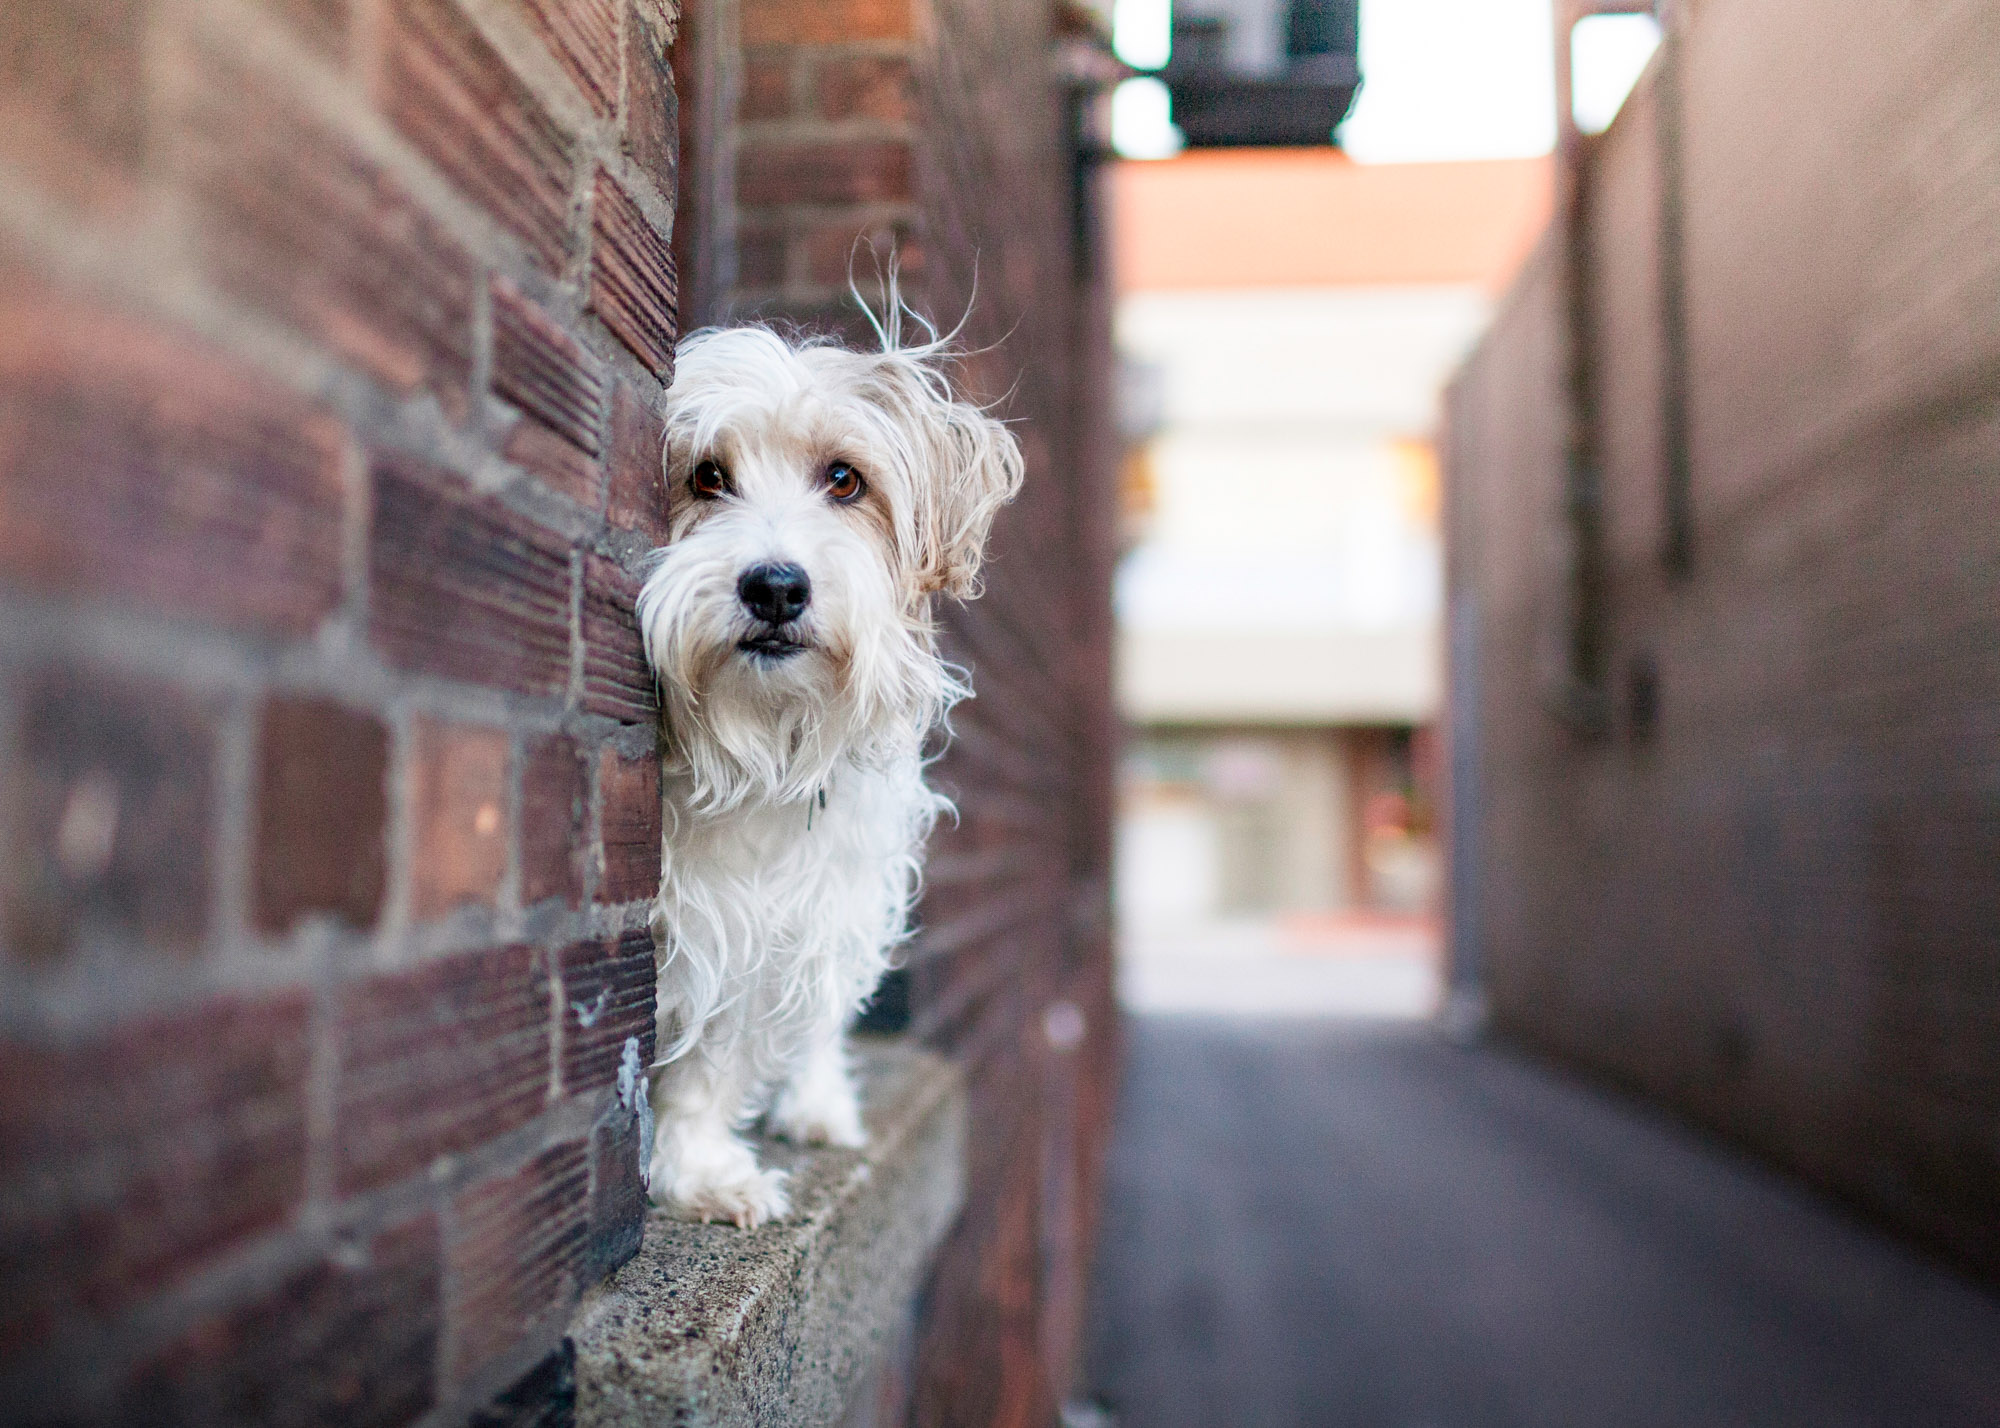 Petite Bassett Griffon Vendeen in the city alley